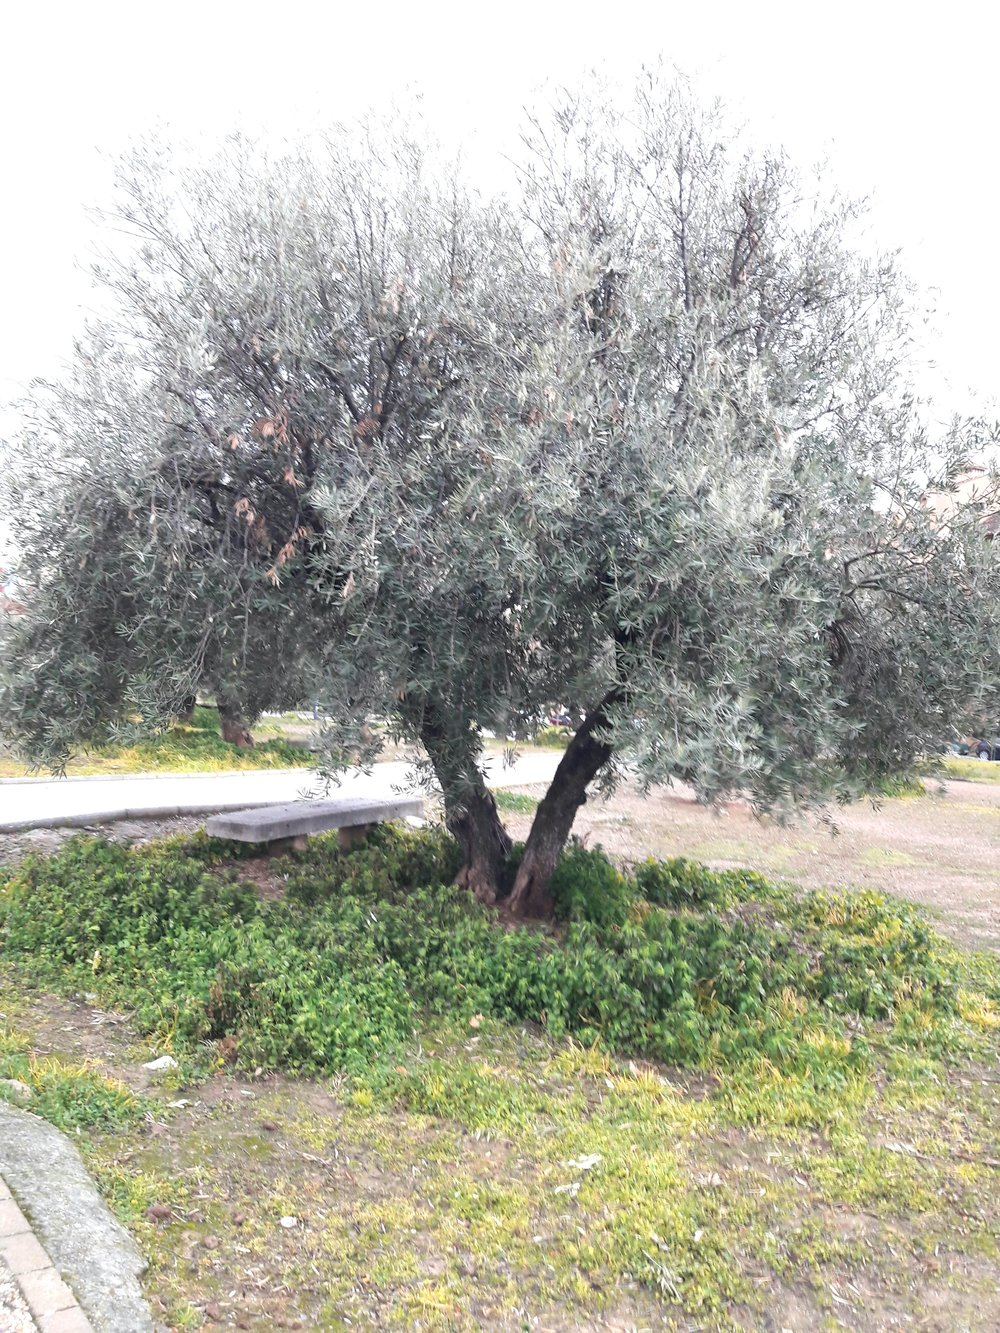 An olive tree now grows in the spot Lorca is thought to have been shot.